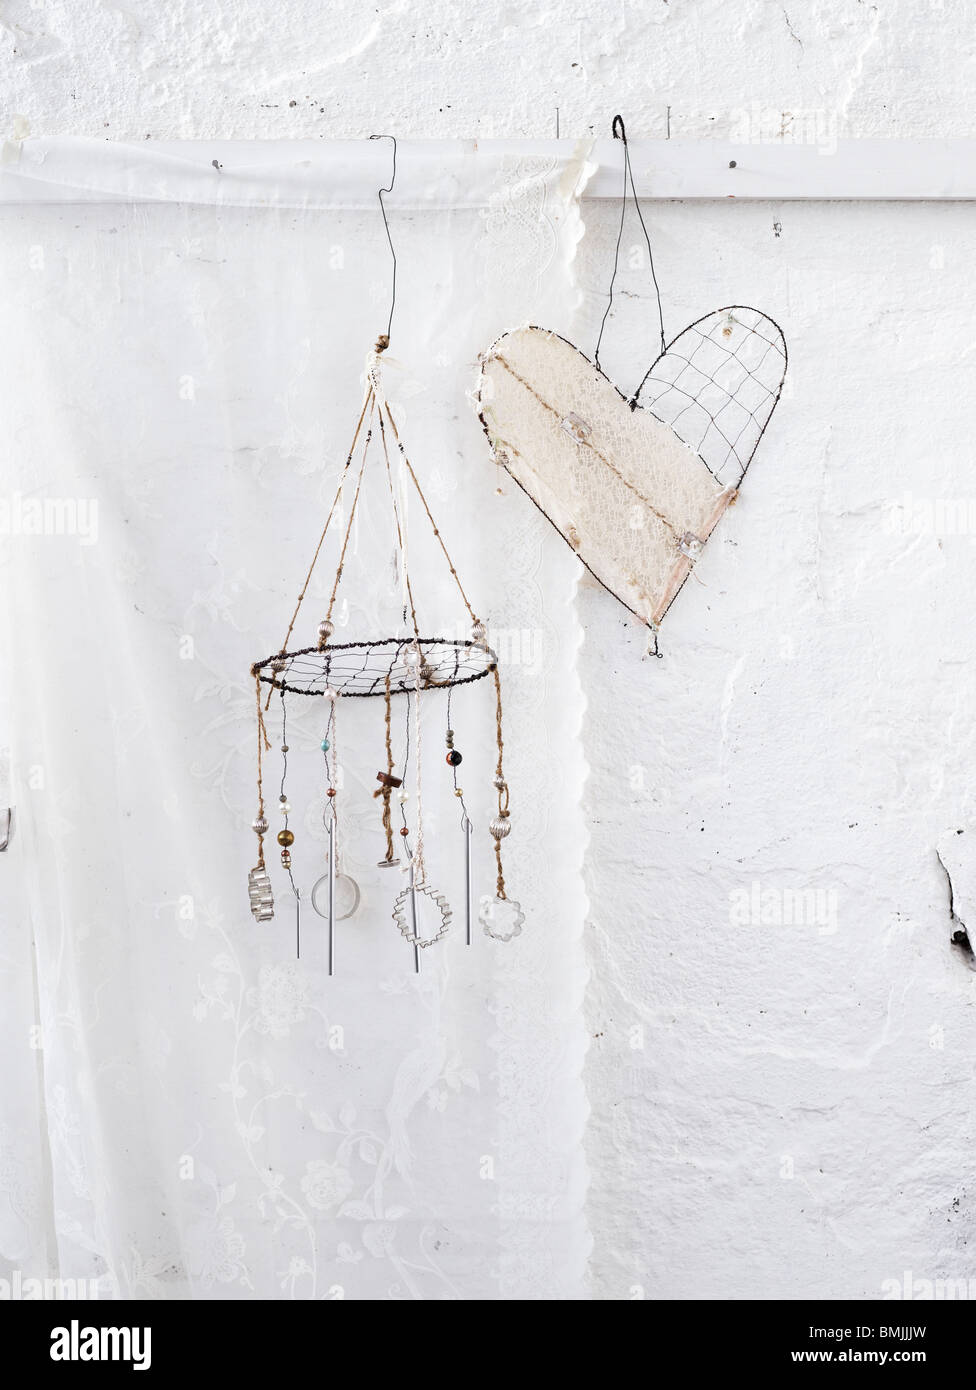 Scandinavia, Sweden, Stockholm, Heart shape and wind chime hanging against white wall - Stock Image